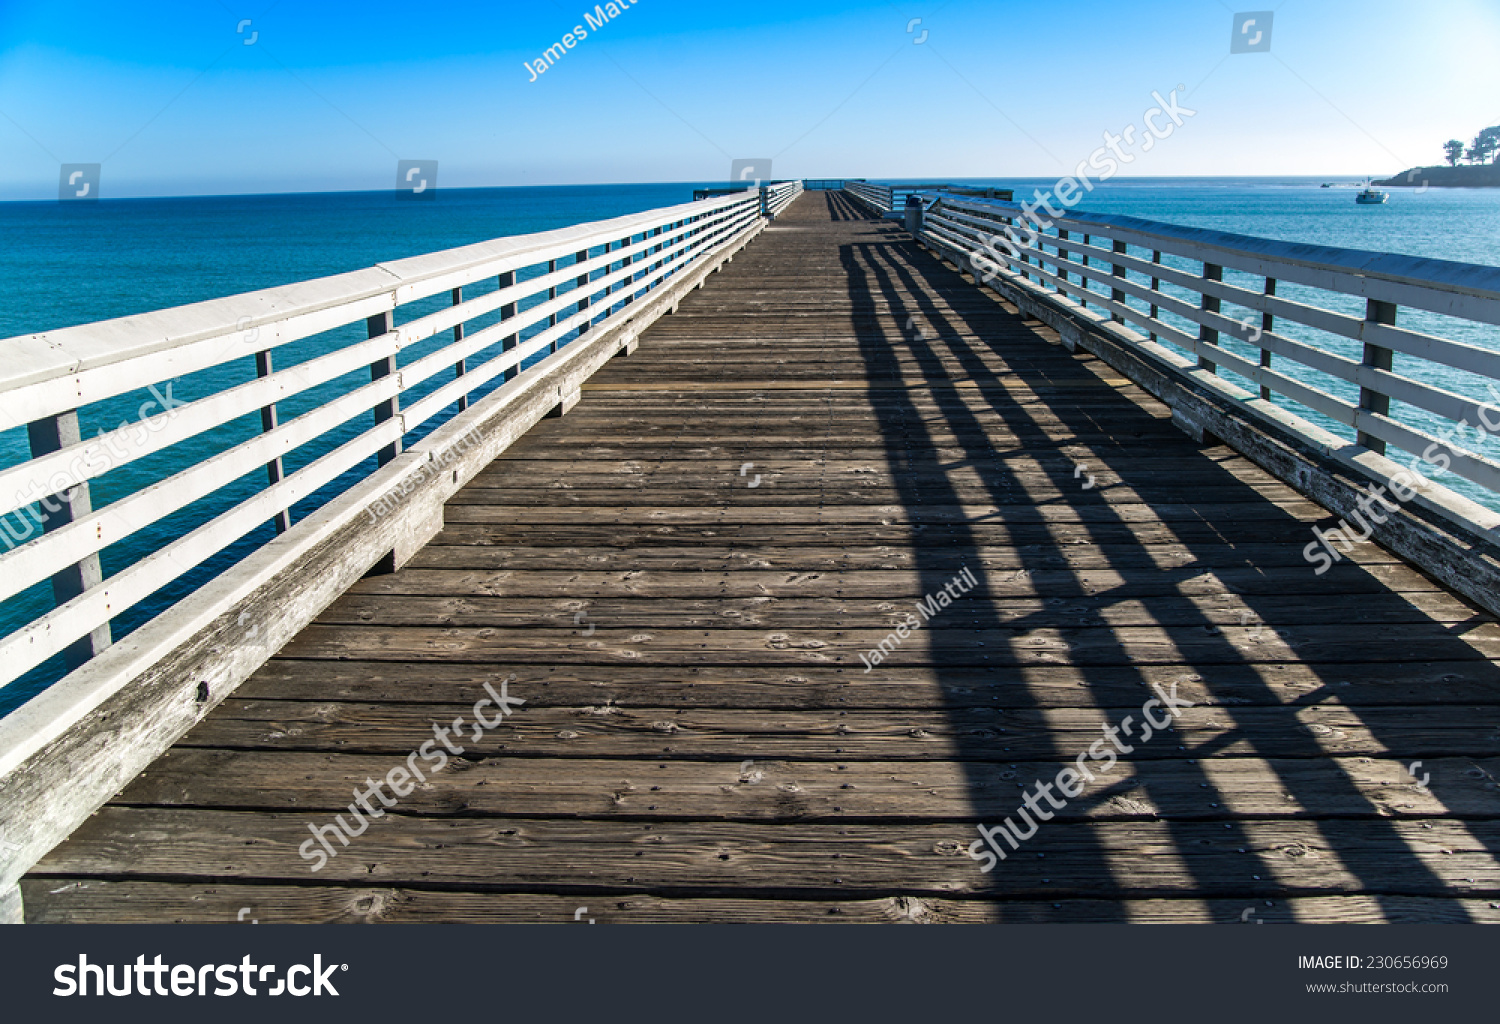 The historic wooden pier at San Simeon reaches into the blue Pacific Ocean